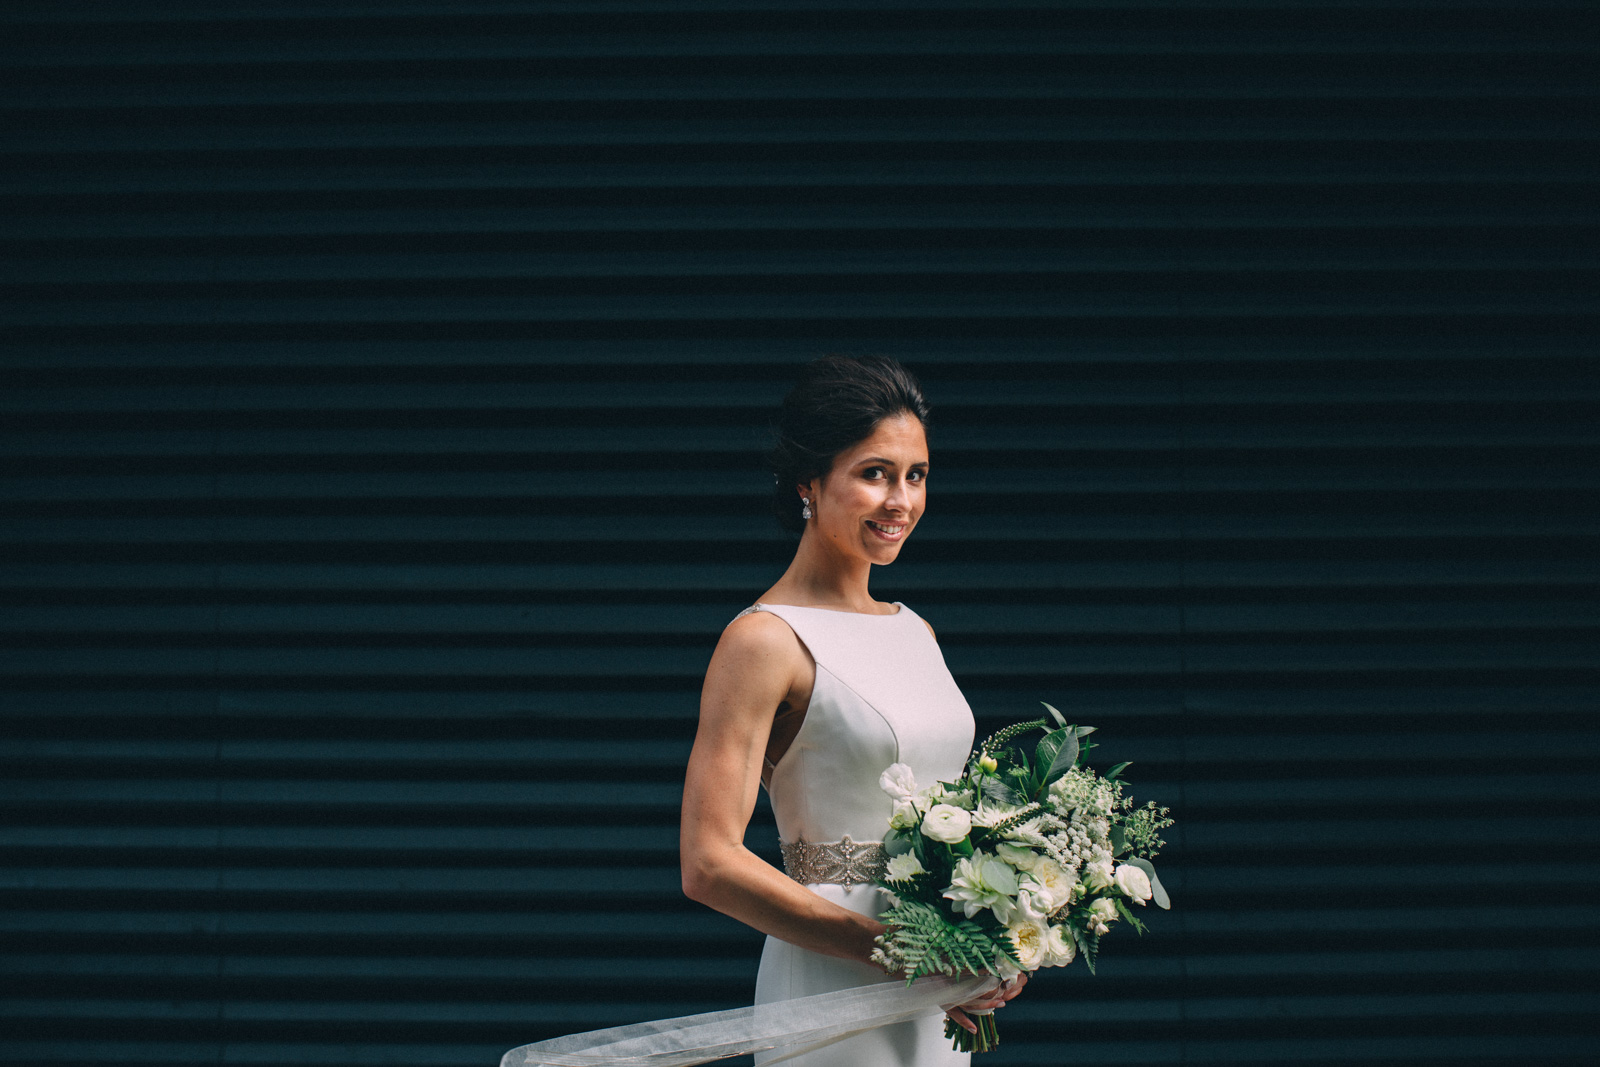 Malaparte-wedding-photography-Toronto-by-Sam-Wong-of-Visual-Cravings_36